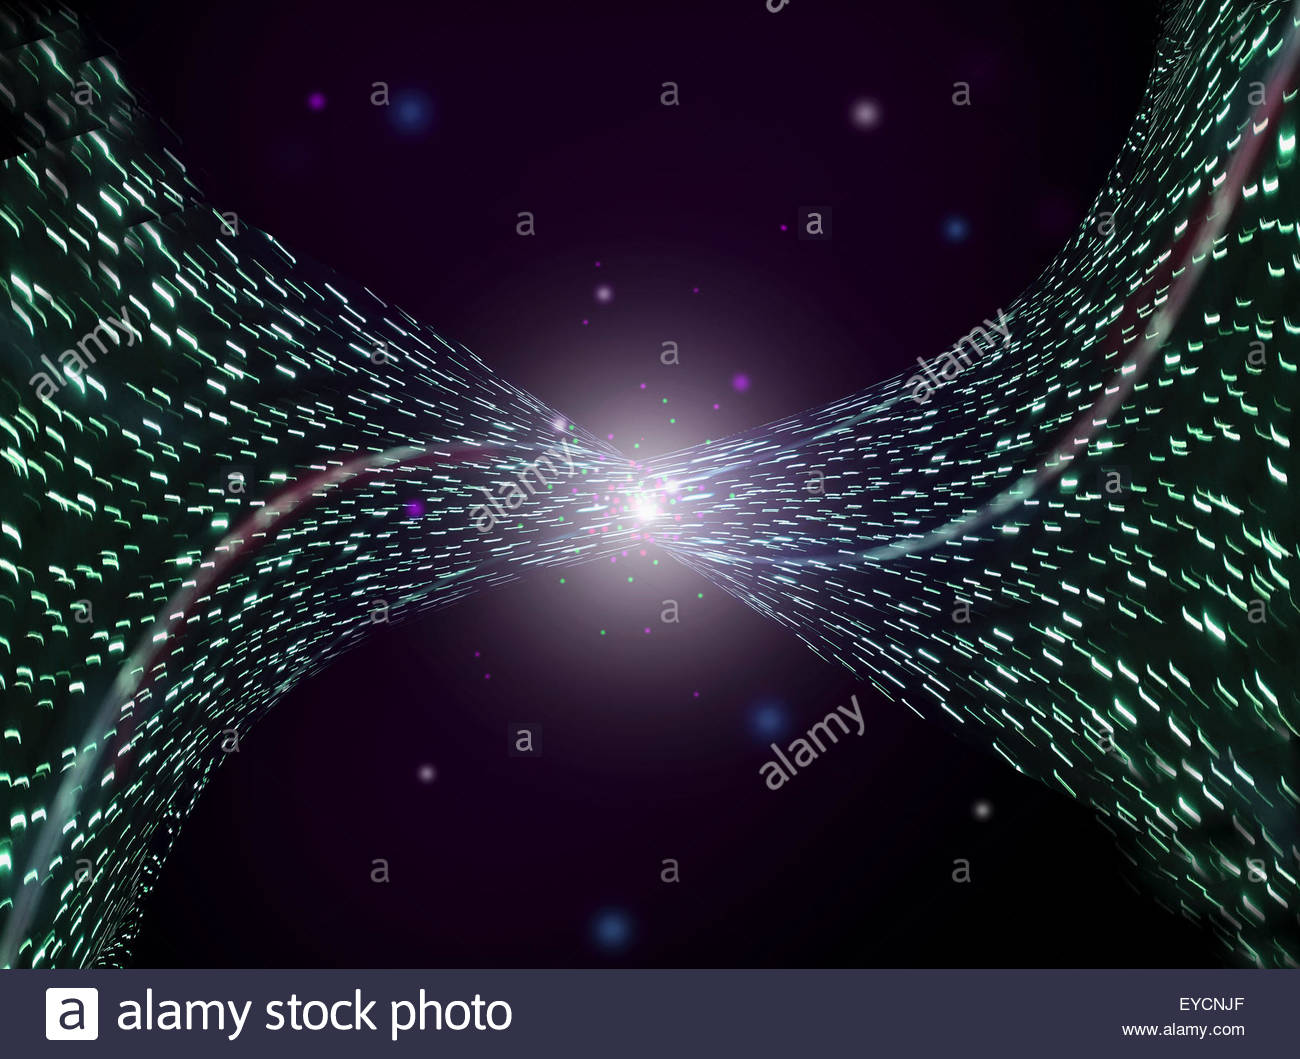 Abstract background pattern of bright light dots spraying from vanishing point - Stock Image